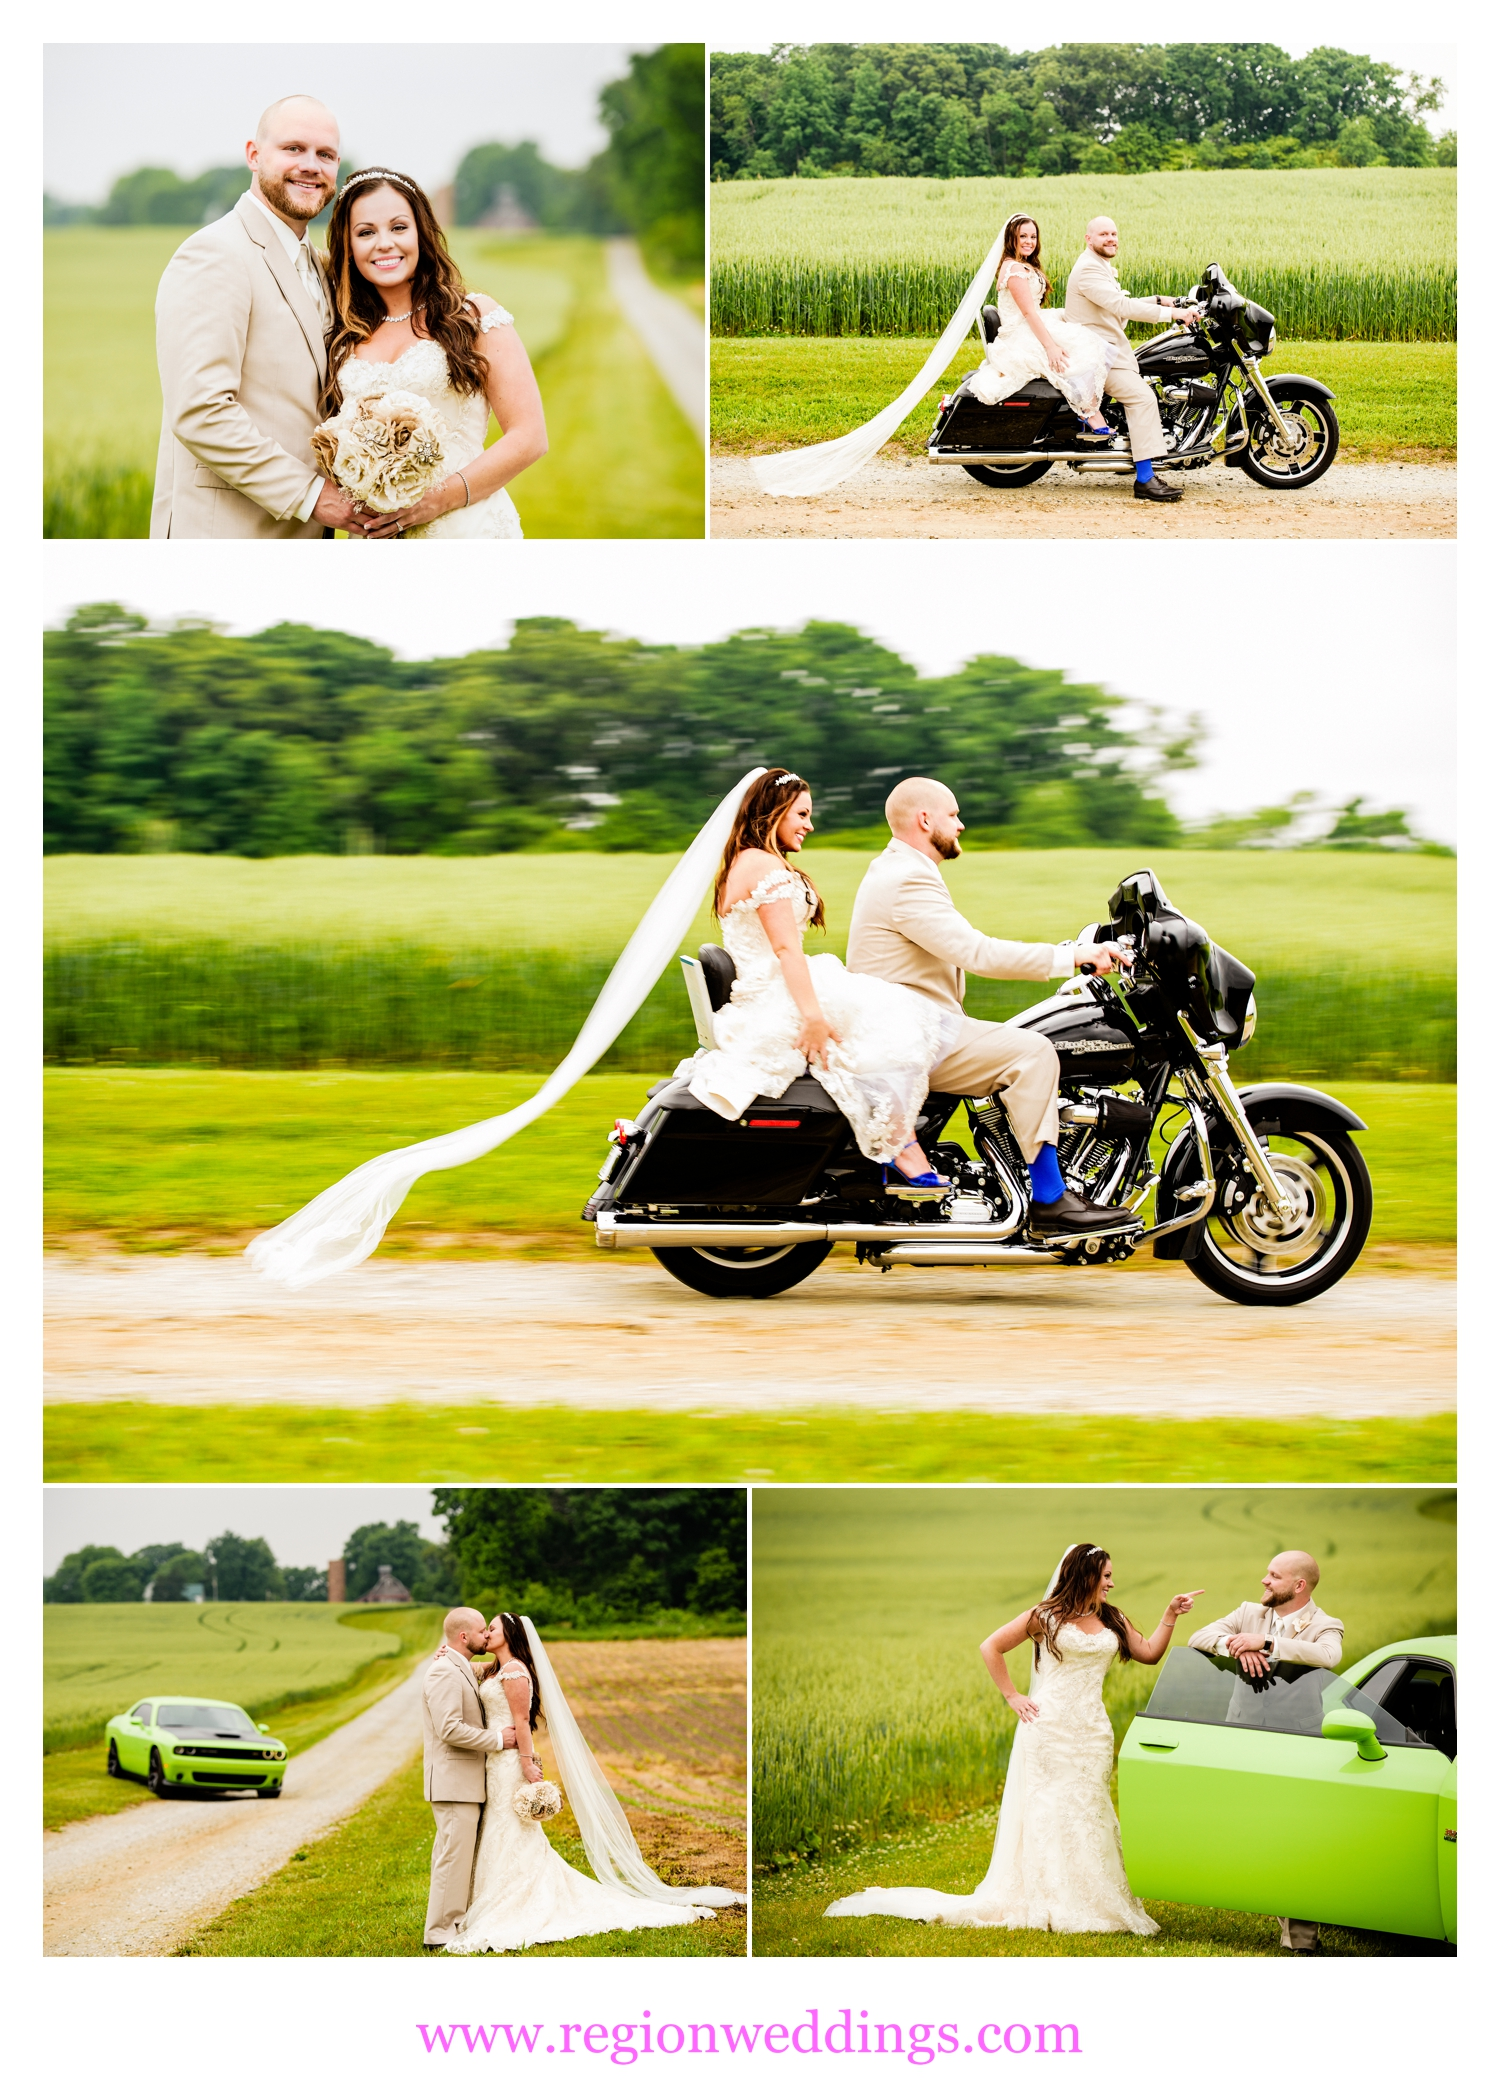 Fun wedding photos of Harley's, hot rods and a bride and groom.